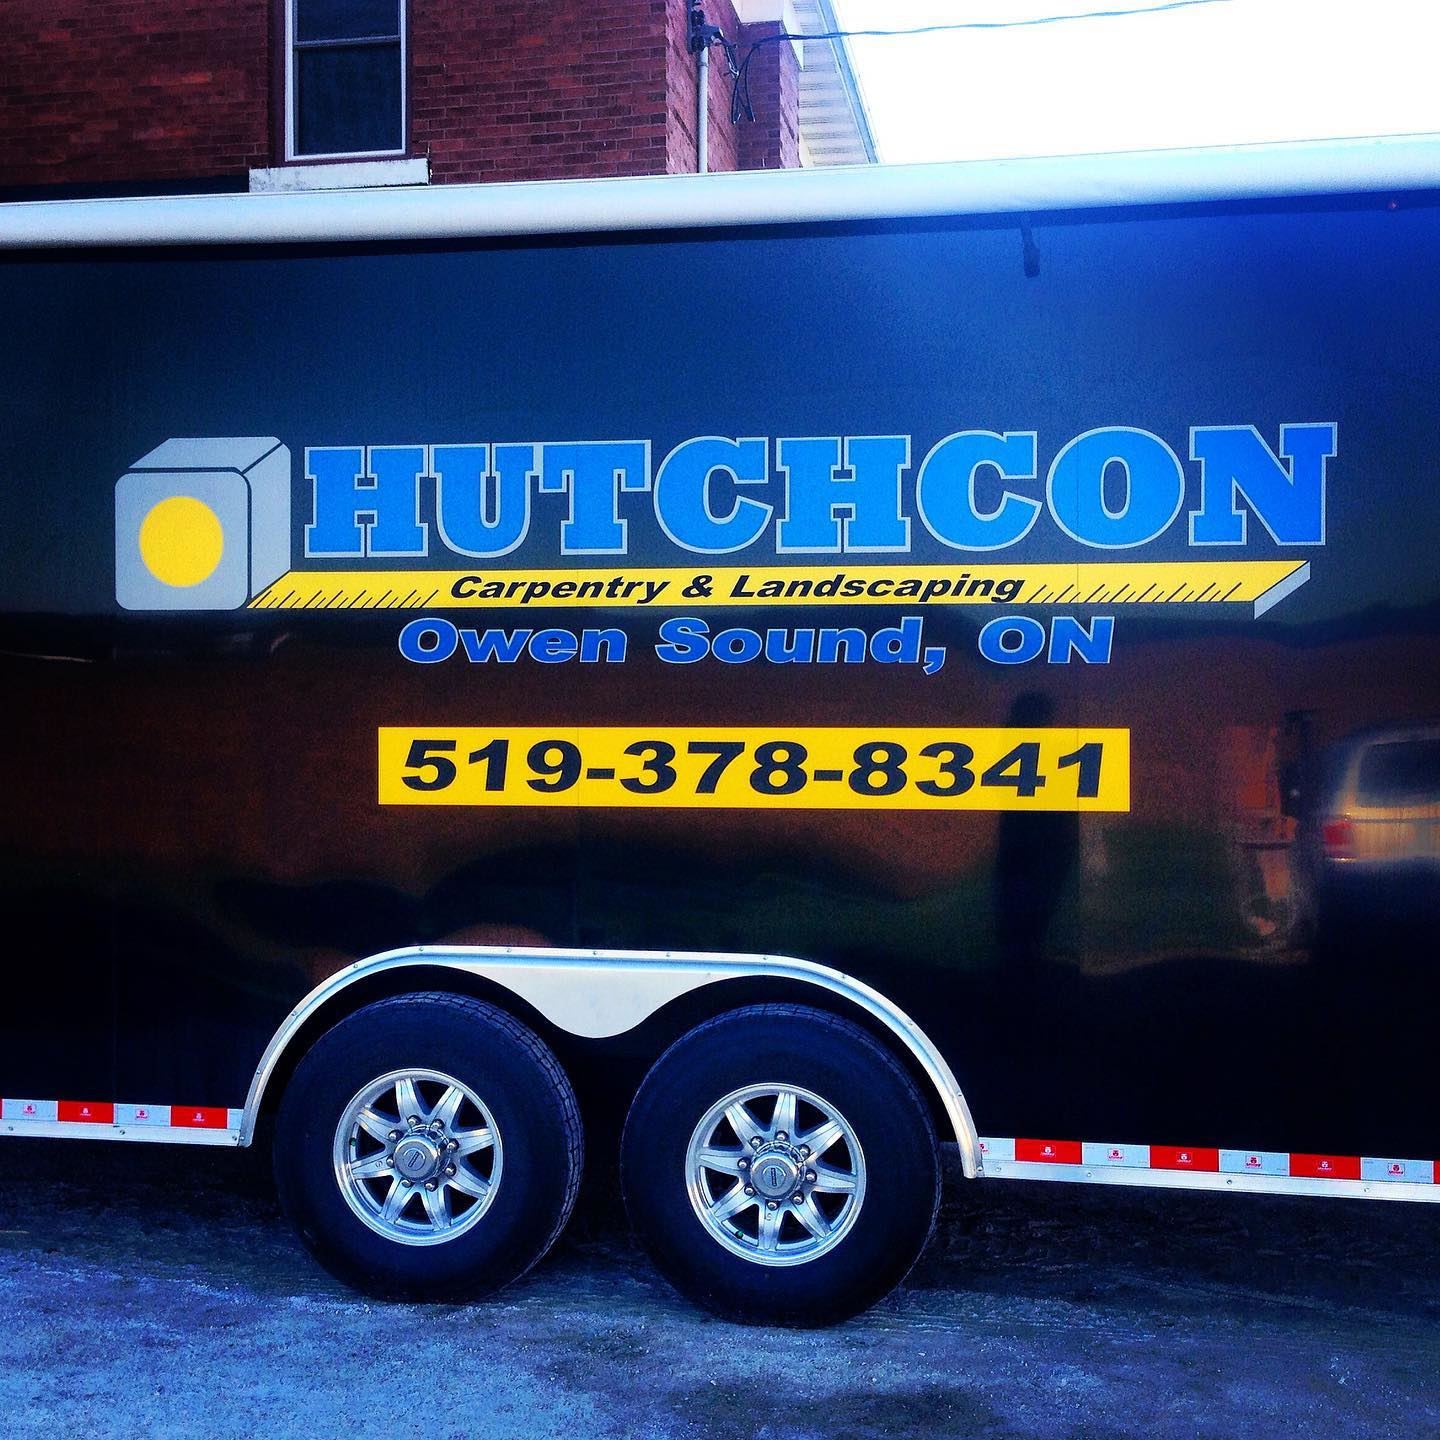 Trailer Decals for Hutchcon Carpentry & Landscaping